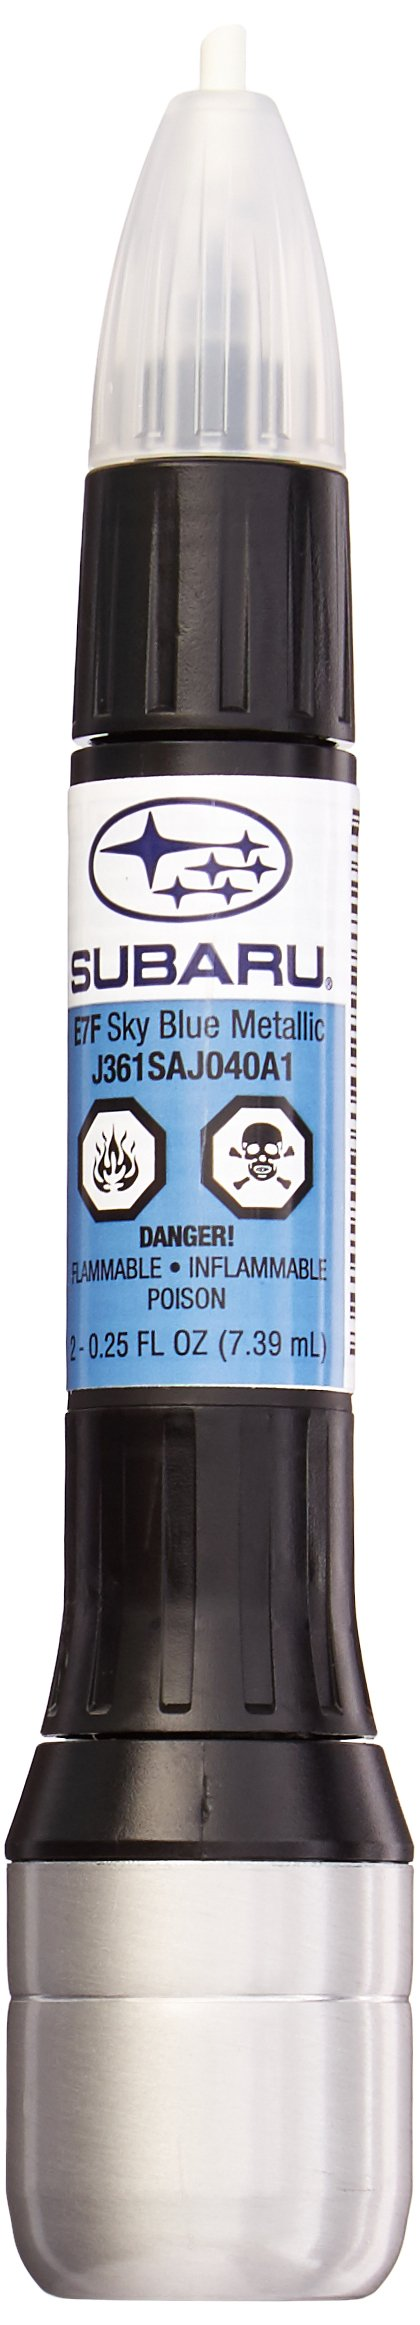 Genuine Subaru J361SAJ040 Touch-Up Paint, Sky Blue Metallic (SB1) E7F, Paint code eh9